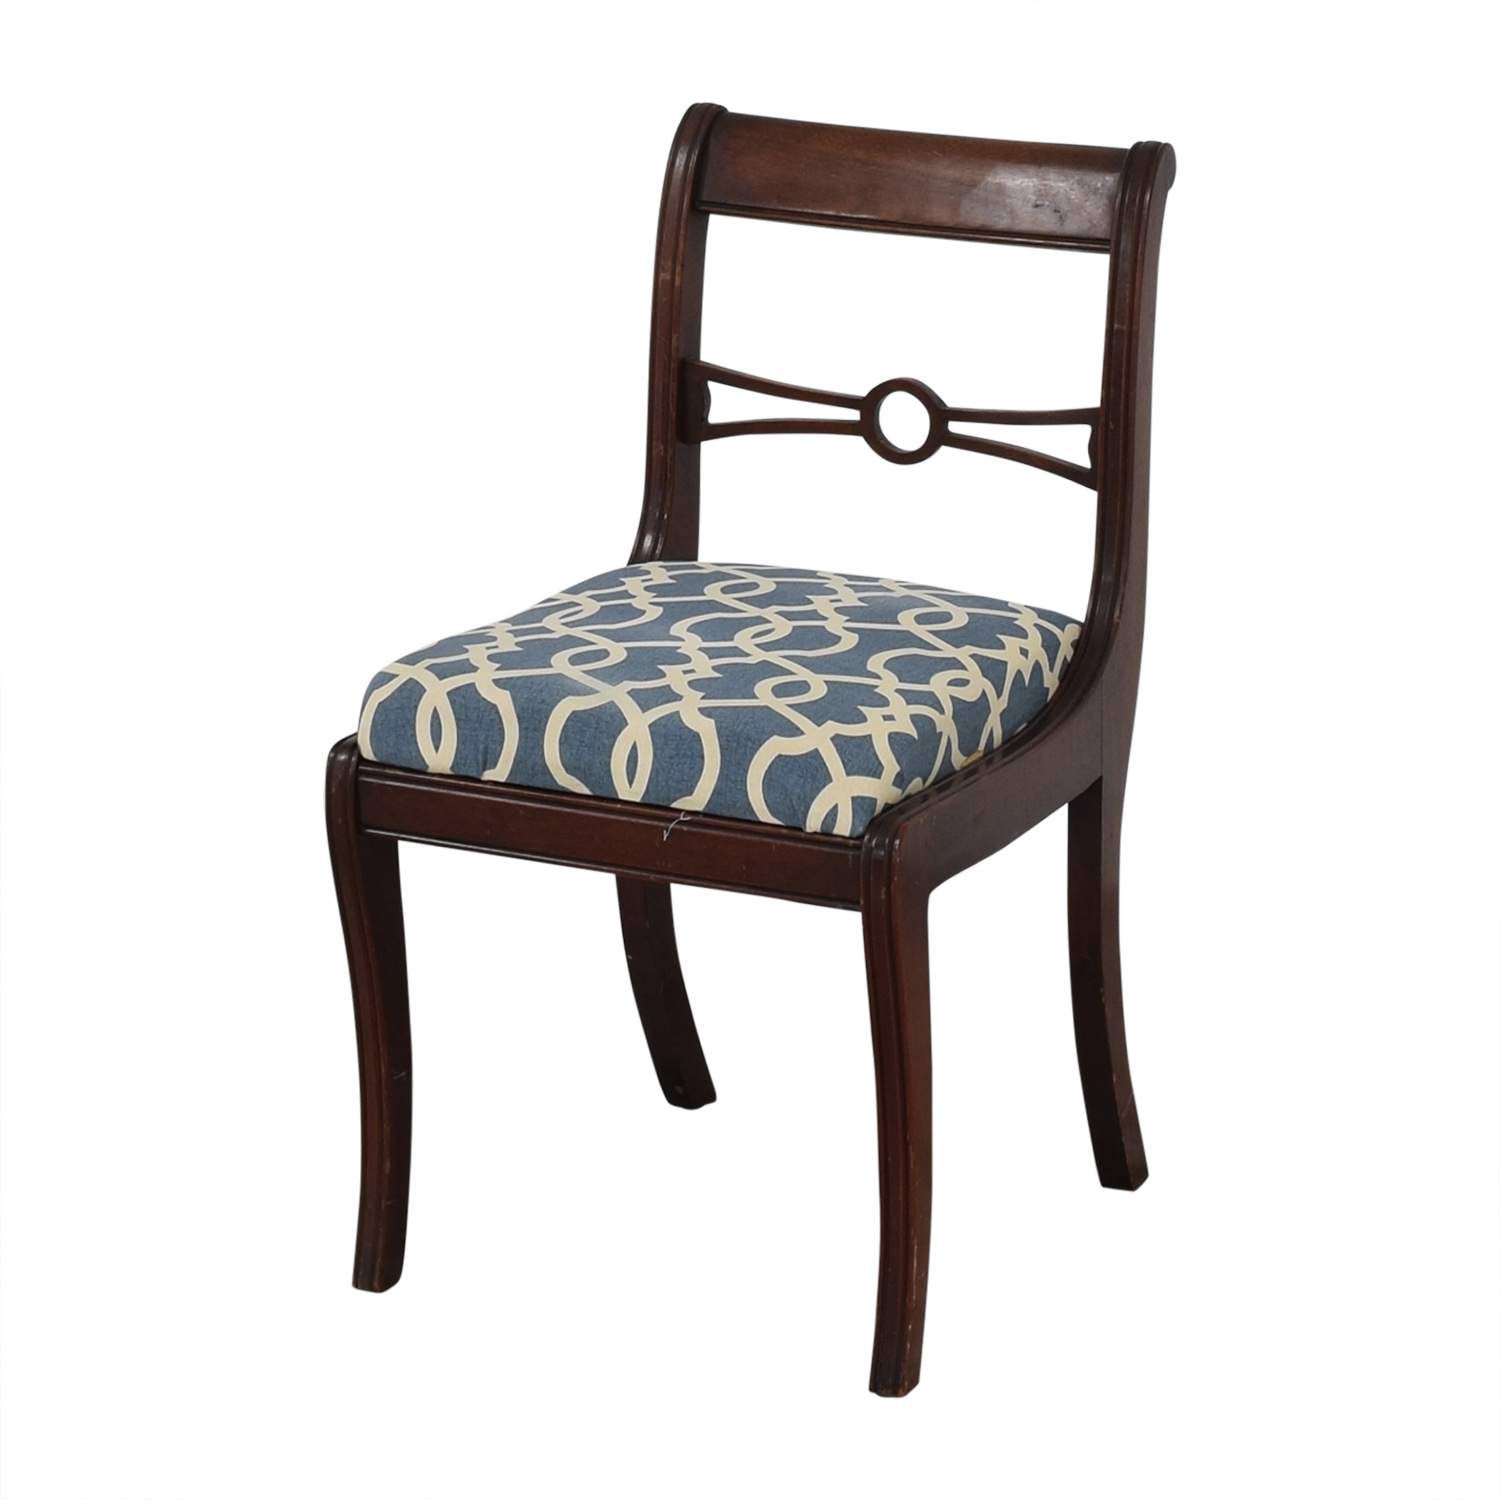 Upholstered Dining Room Chairs price